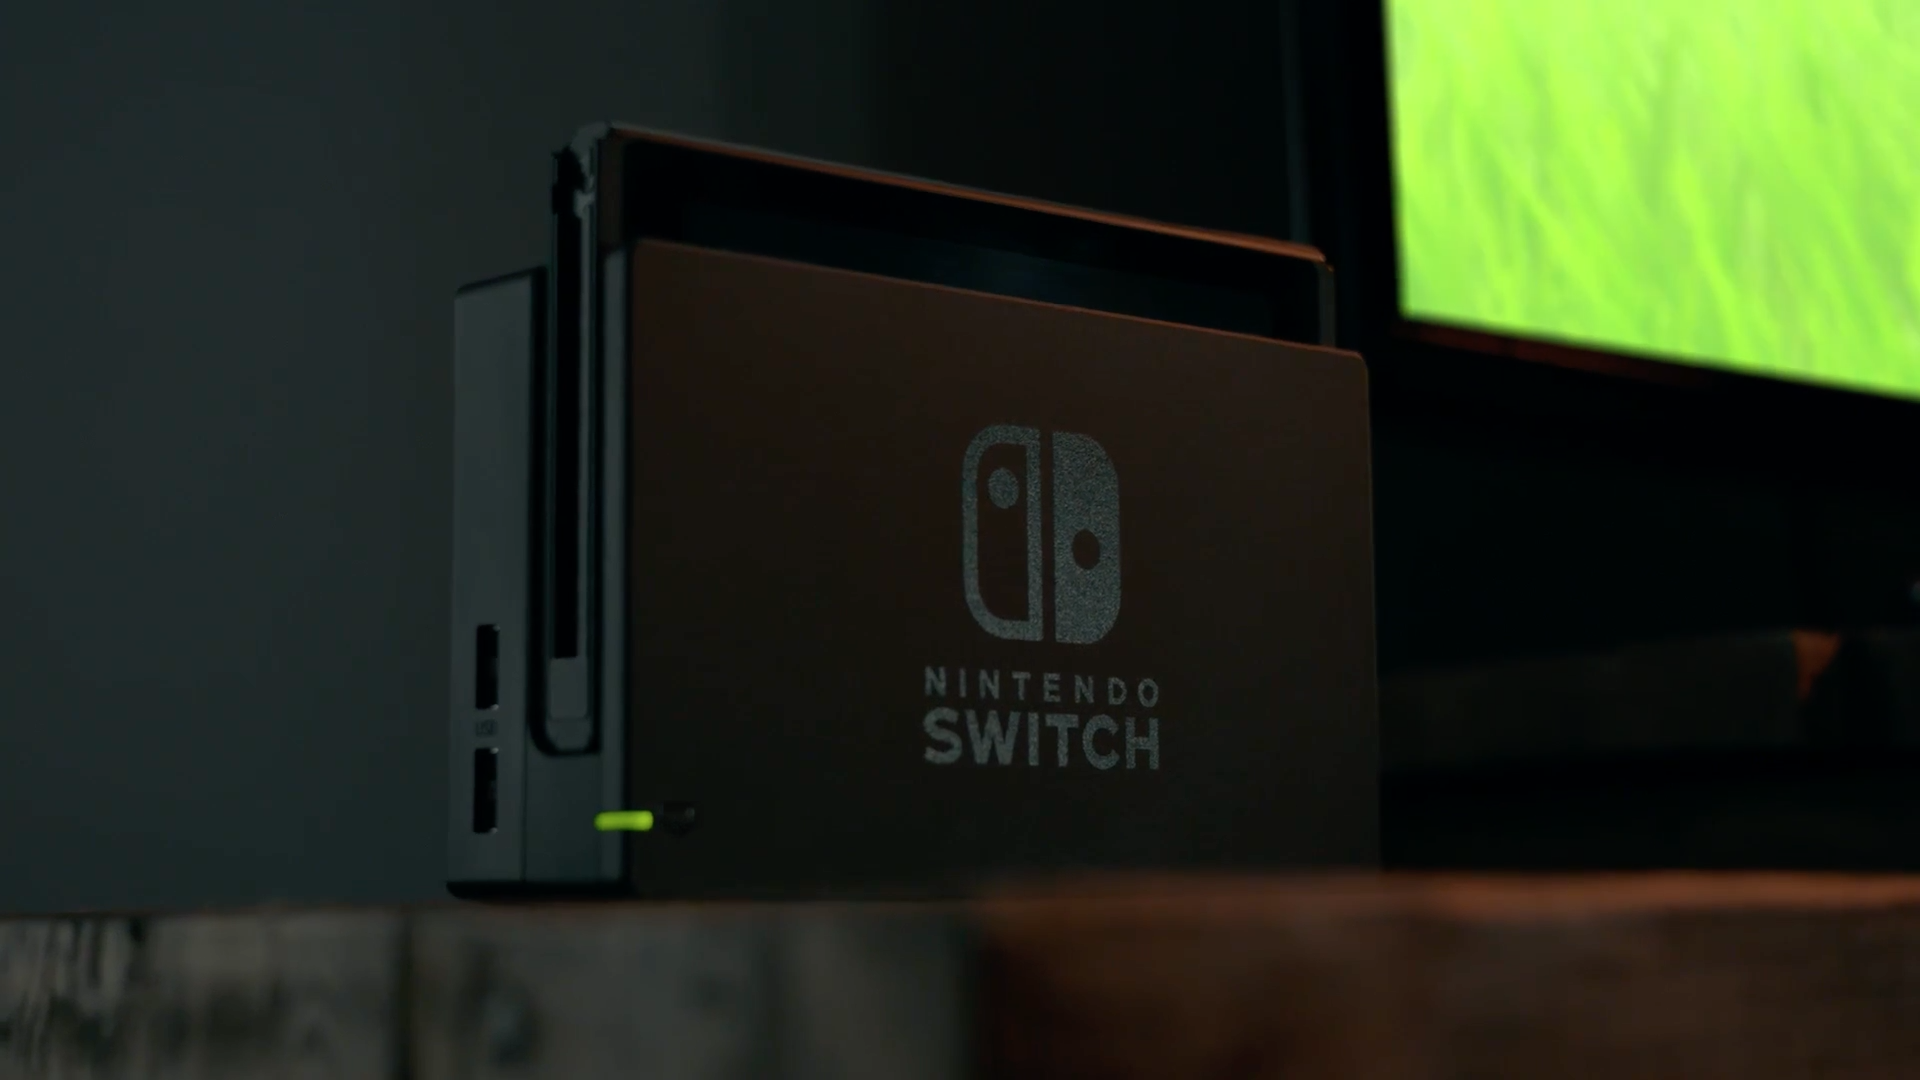 nintendo switch black widescreen computer wallpaper 911